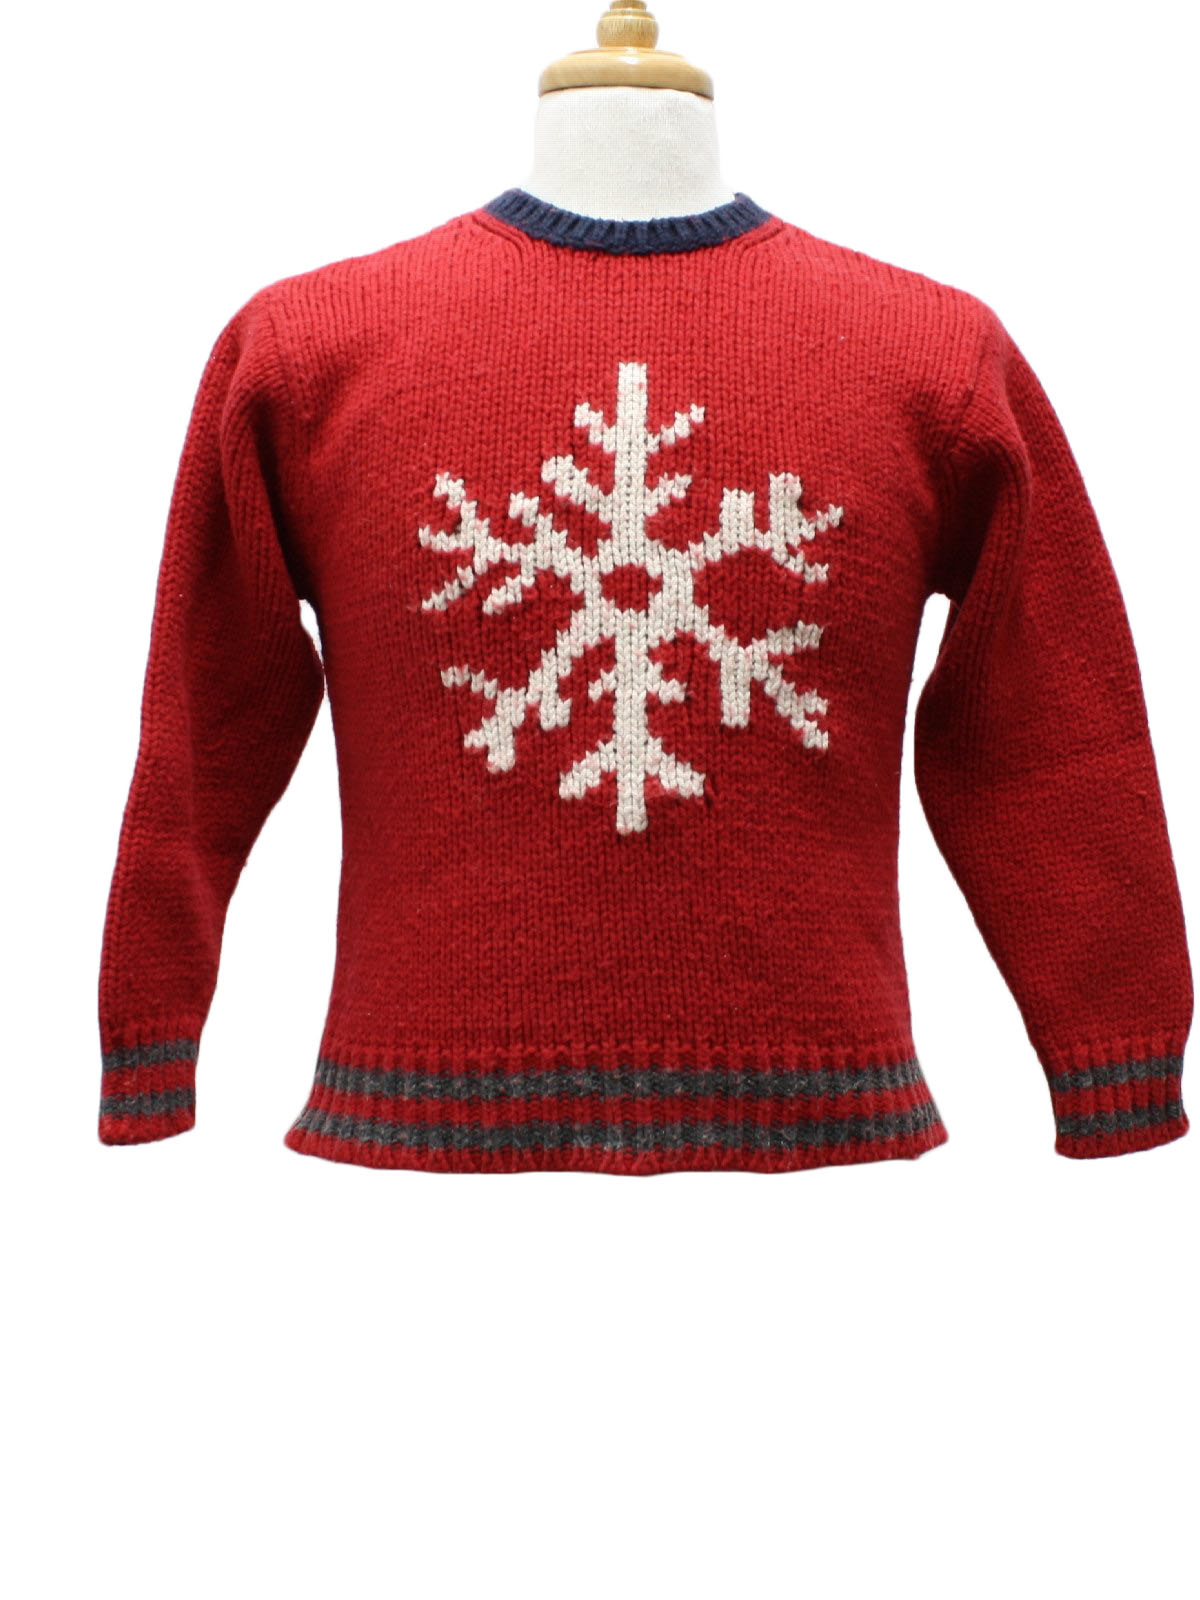 Childs Ugly Christmas Sweater: -Gap Kids- Unisex/Childs Red ...